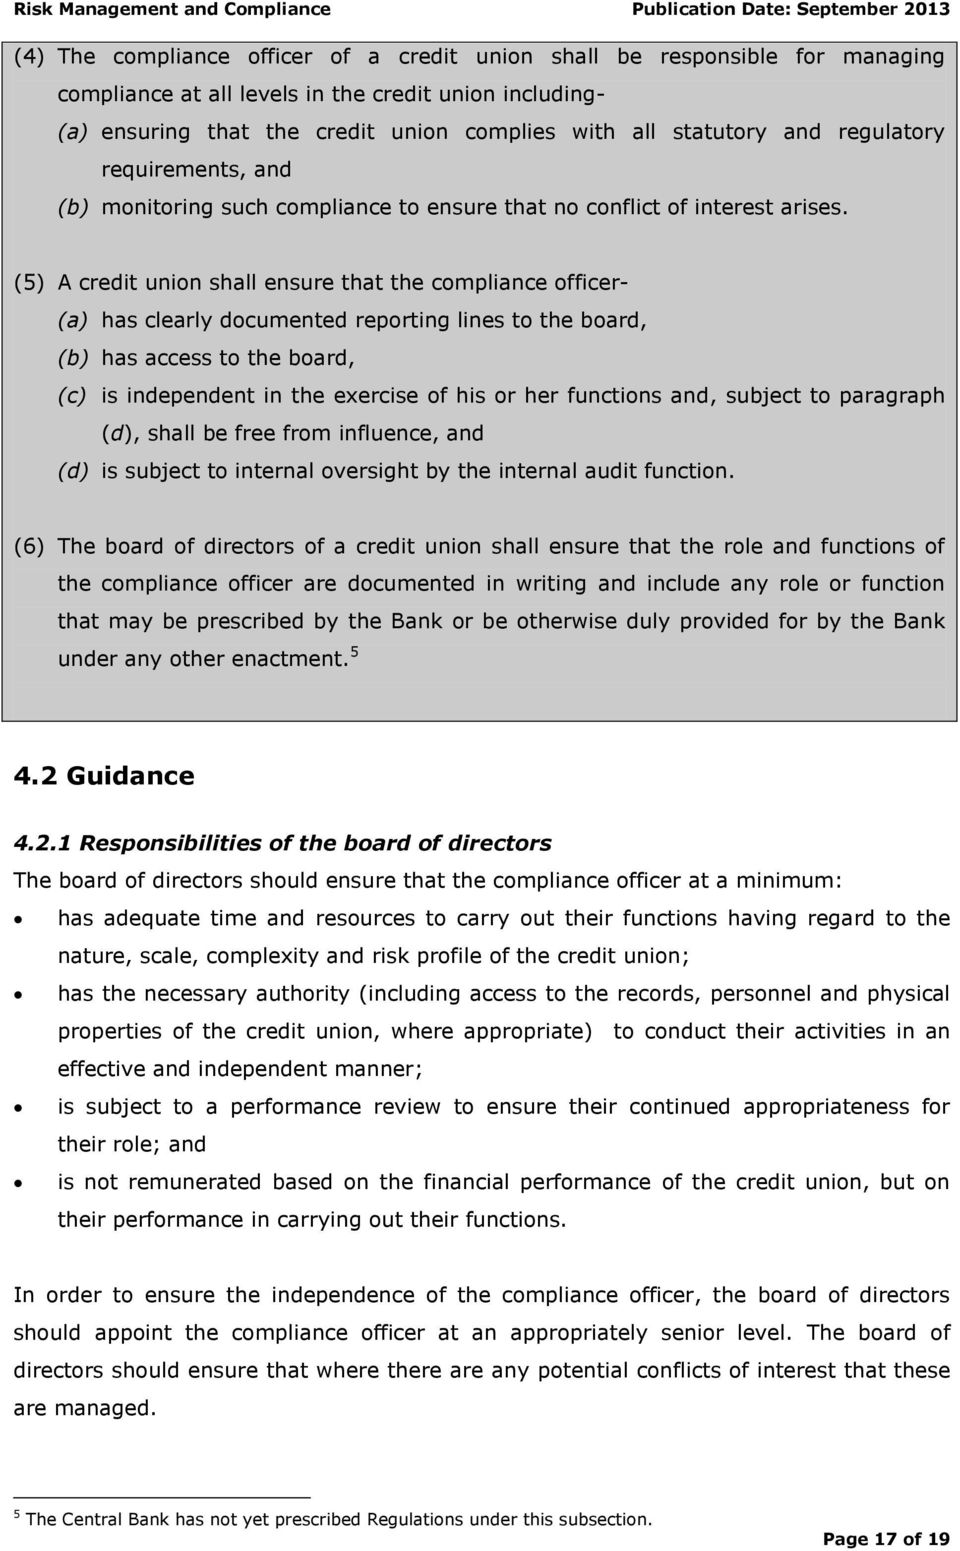 (5) A credit union shall ensure that the compliance officer- (a) has clearly documented reporting lines to the board, (b) has access to the board, (c) is independent in the exercise of his or her